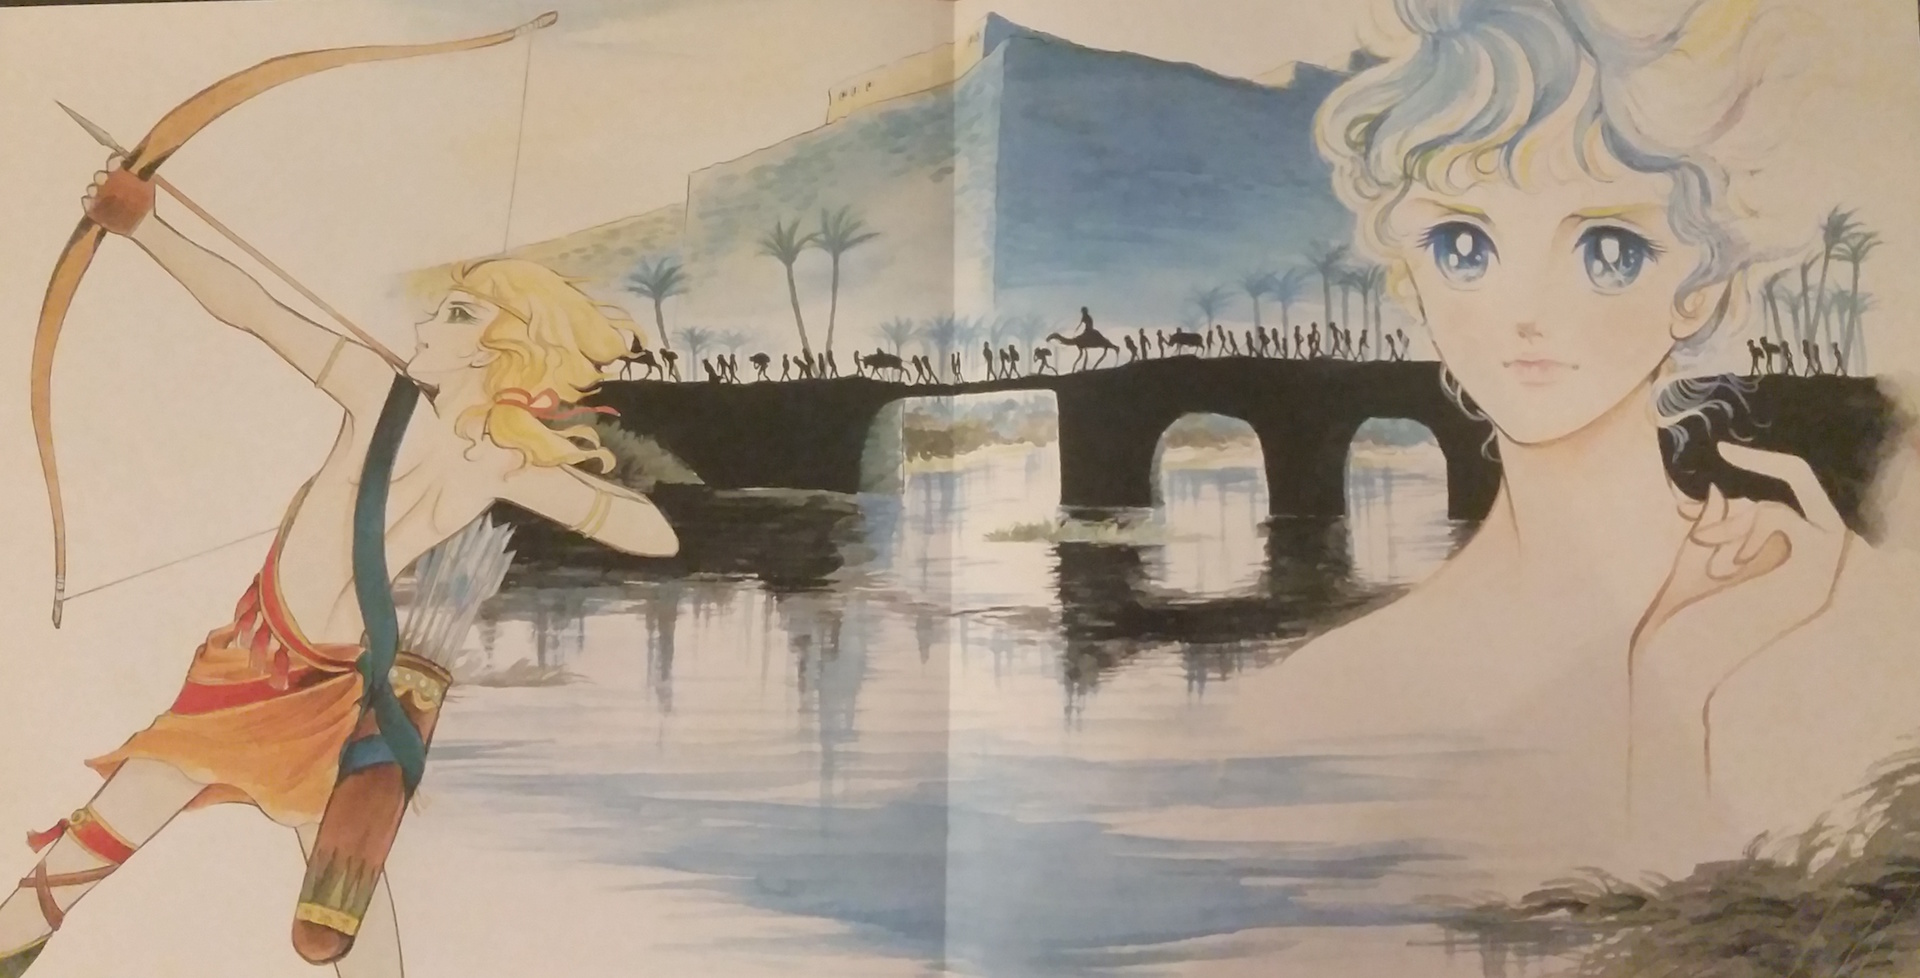 Gatefold insert from the album. A young boy archer on the left, standing in front of a desert caravan traveling over a bridge over (presumably) the Nile, flanked by palm trees and adobe buildings. To the right, a young blue-haired boy.